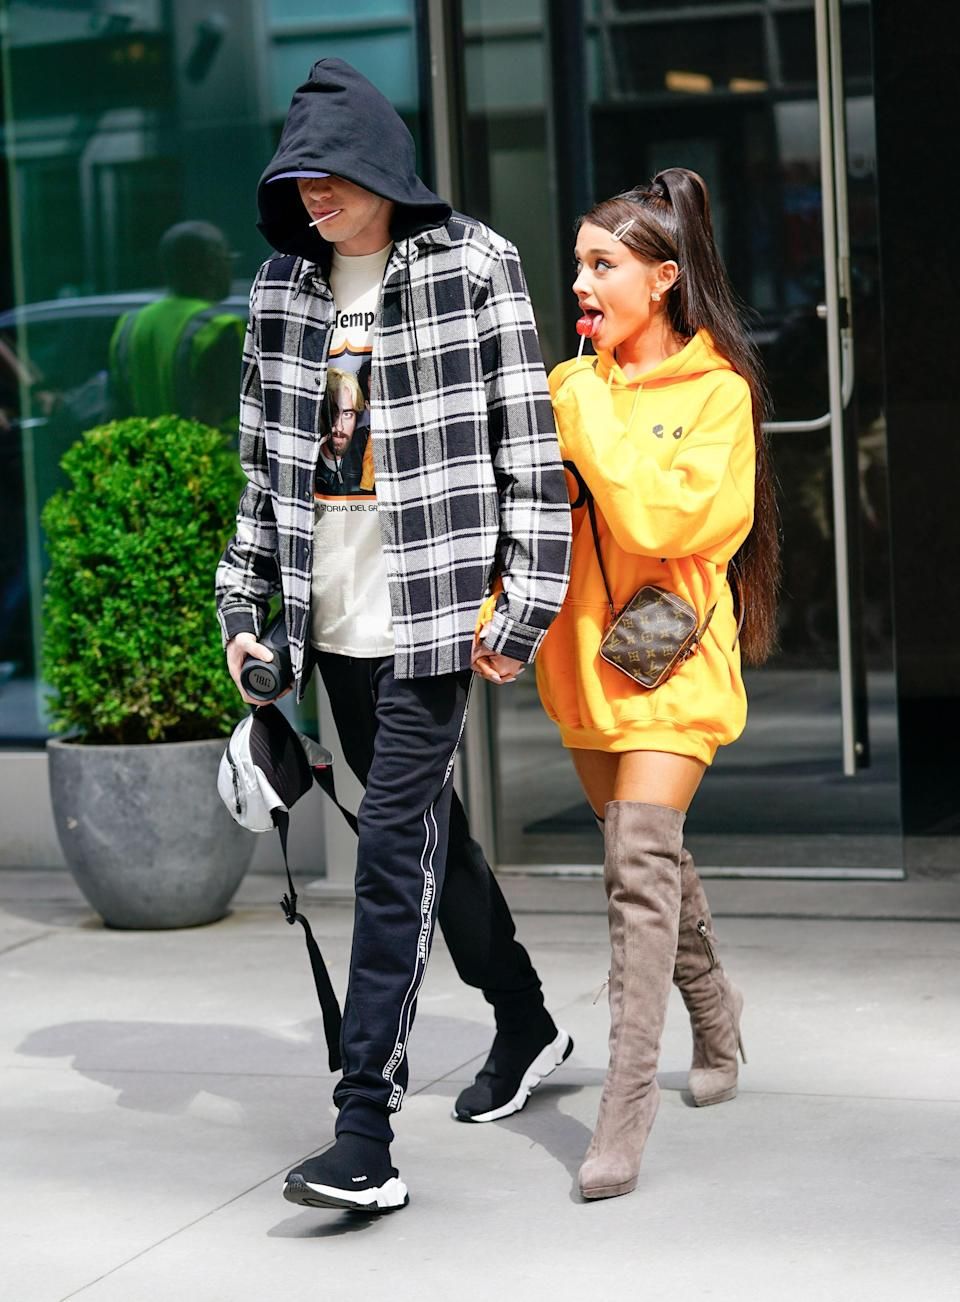 If Grande didn't invent the oversized hoodie and knee-high boot combo she's definitely its biggest celebrity ambassador. The outfit alone is a cute everyday look, but it's the lollipop in sleeve-covered hand while suggestively gazing at ex- Pete Davidson that make this image one for the books.